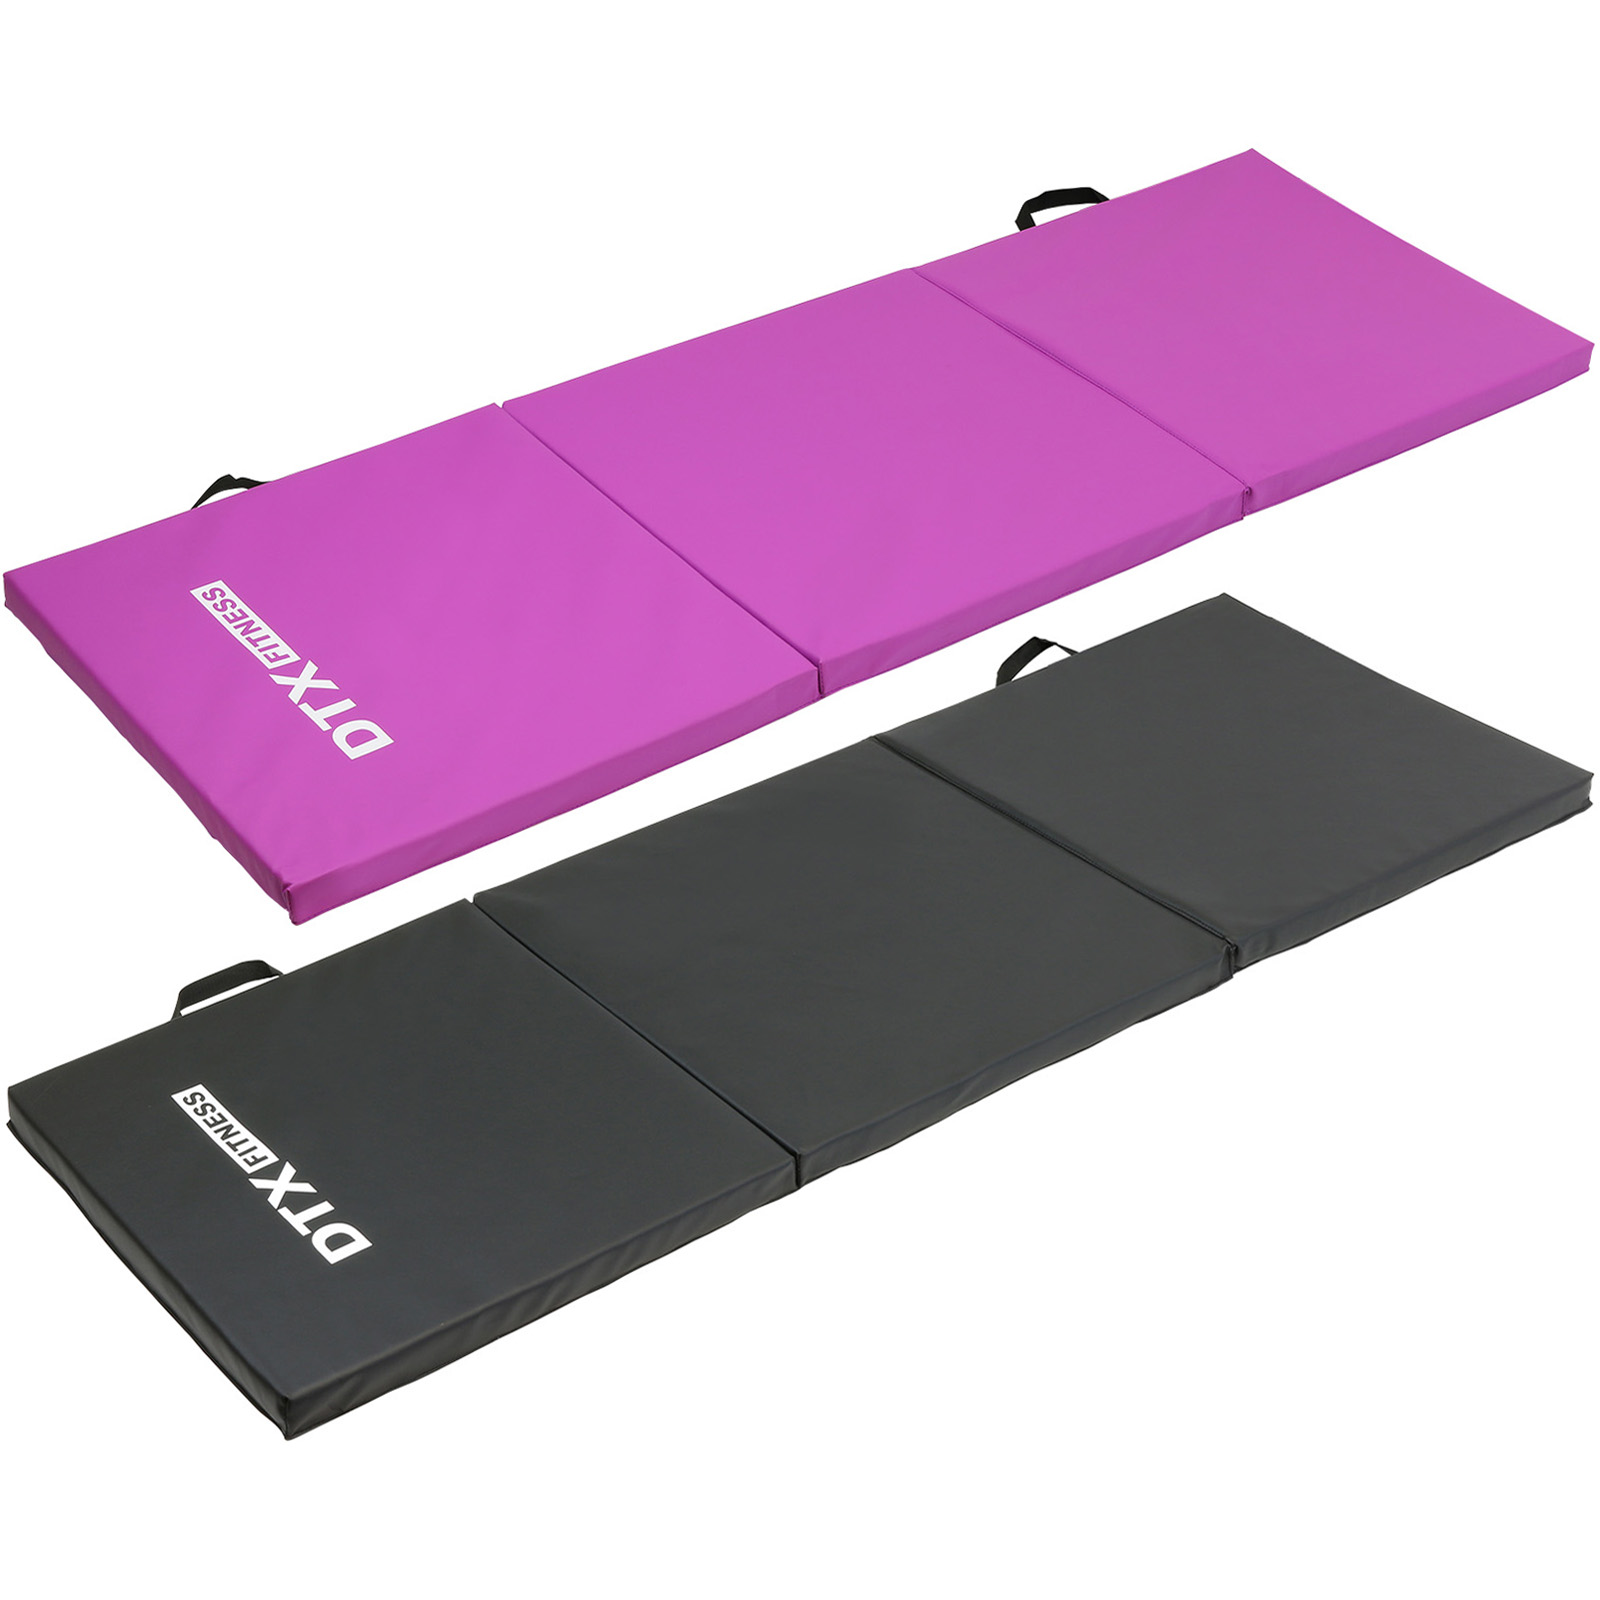 kids toddler gymnastics images gym children ideas section diy mats exercise folding toys softzone panel amazing mat tumbling